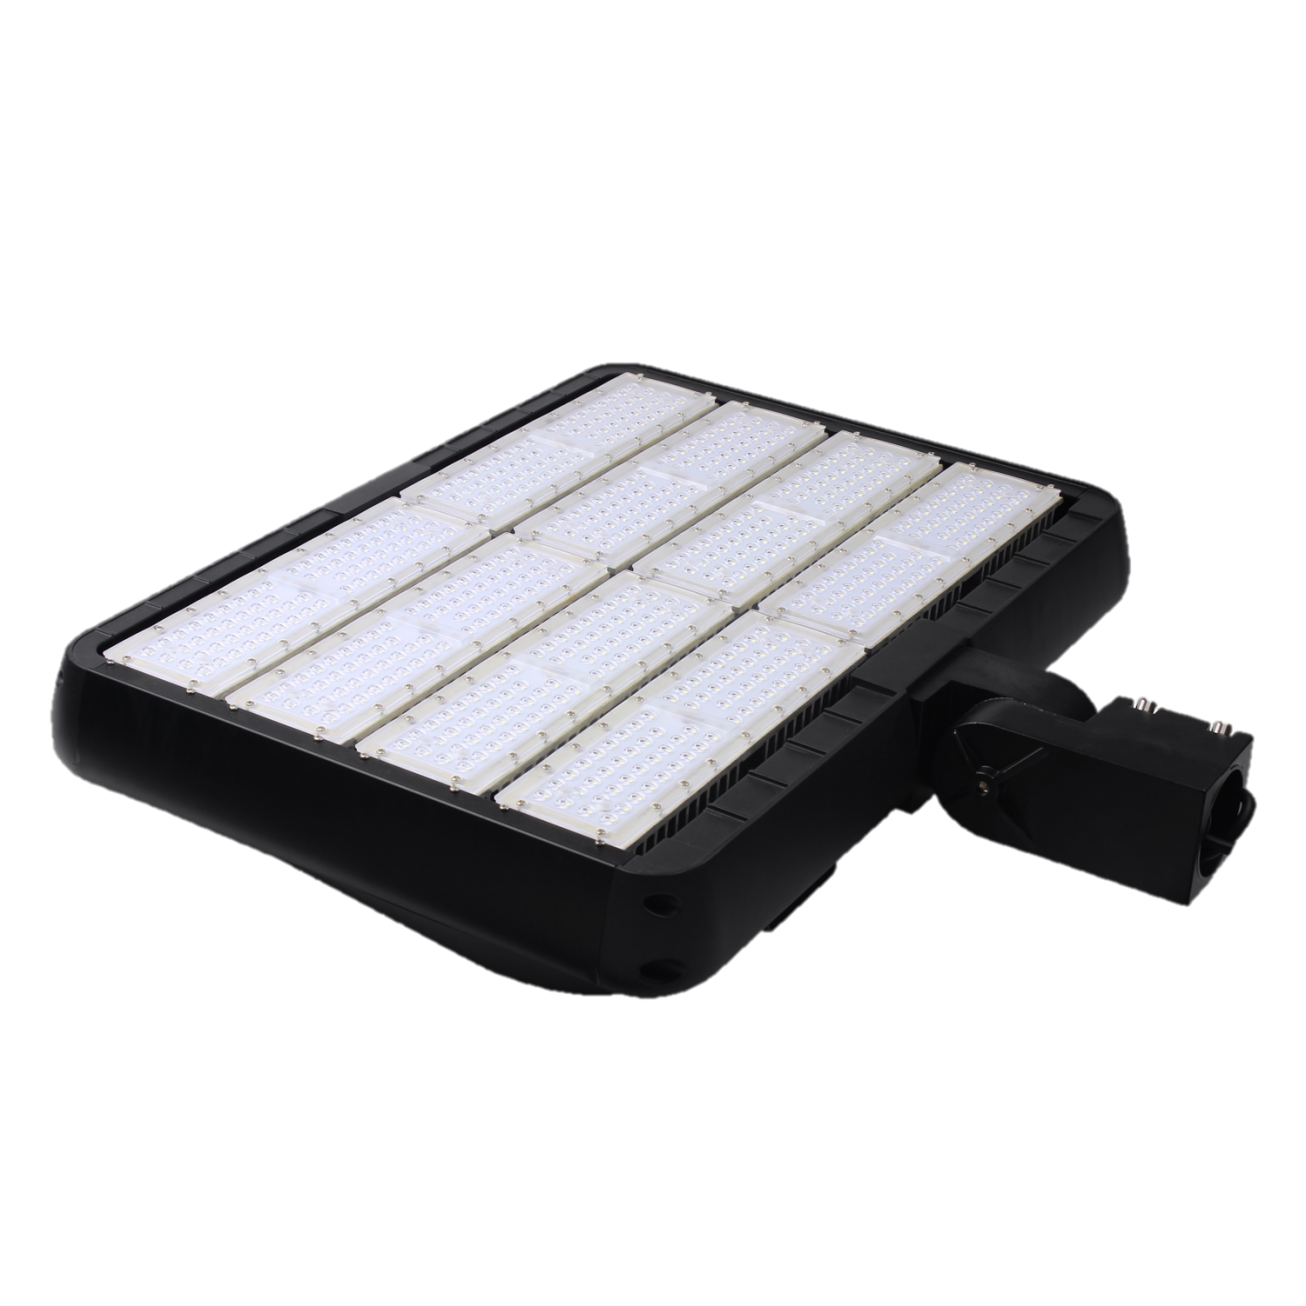 Led Light Fixture Power Factor: 480w LED Area Lighting Fixture